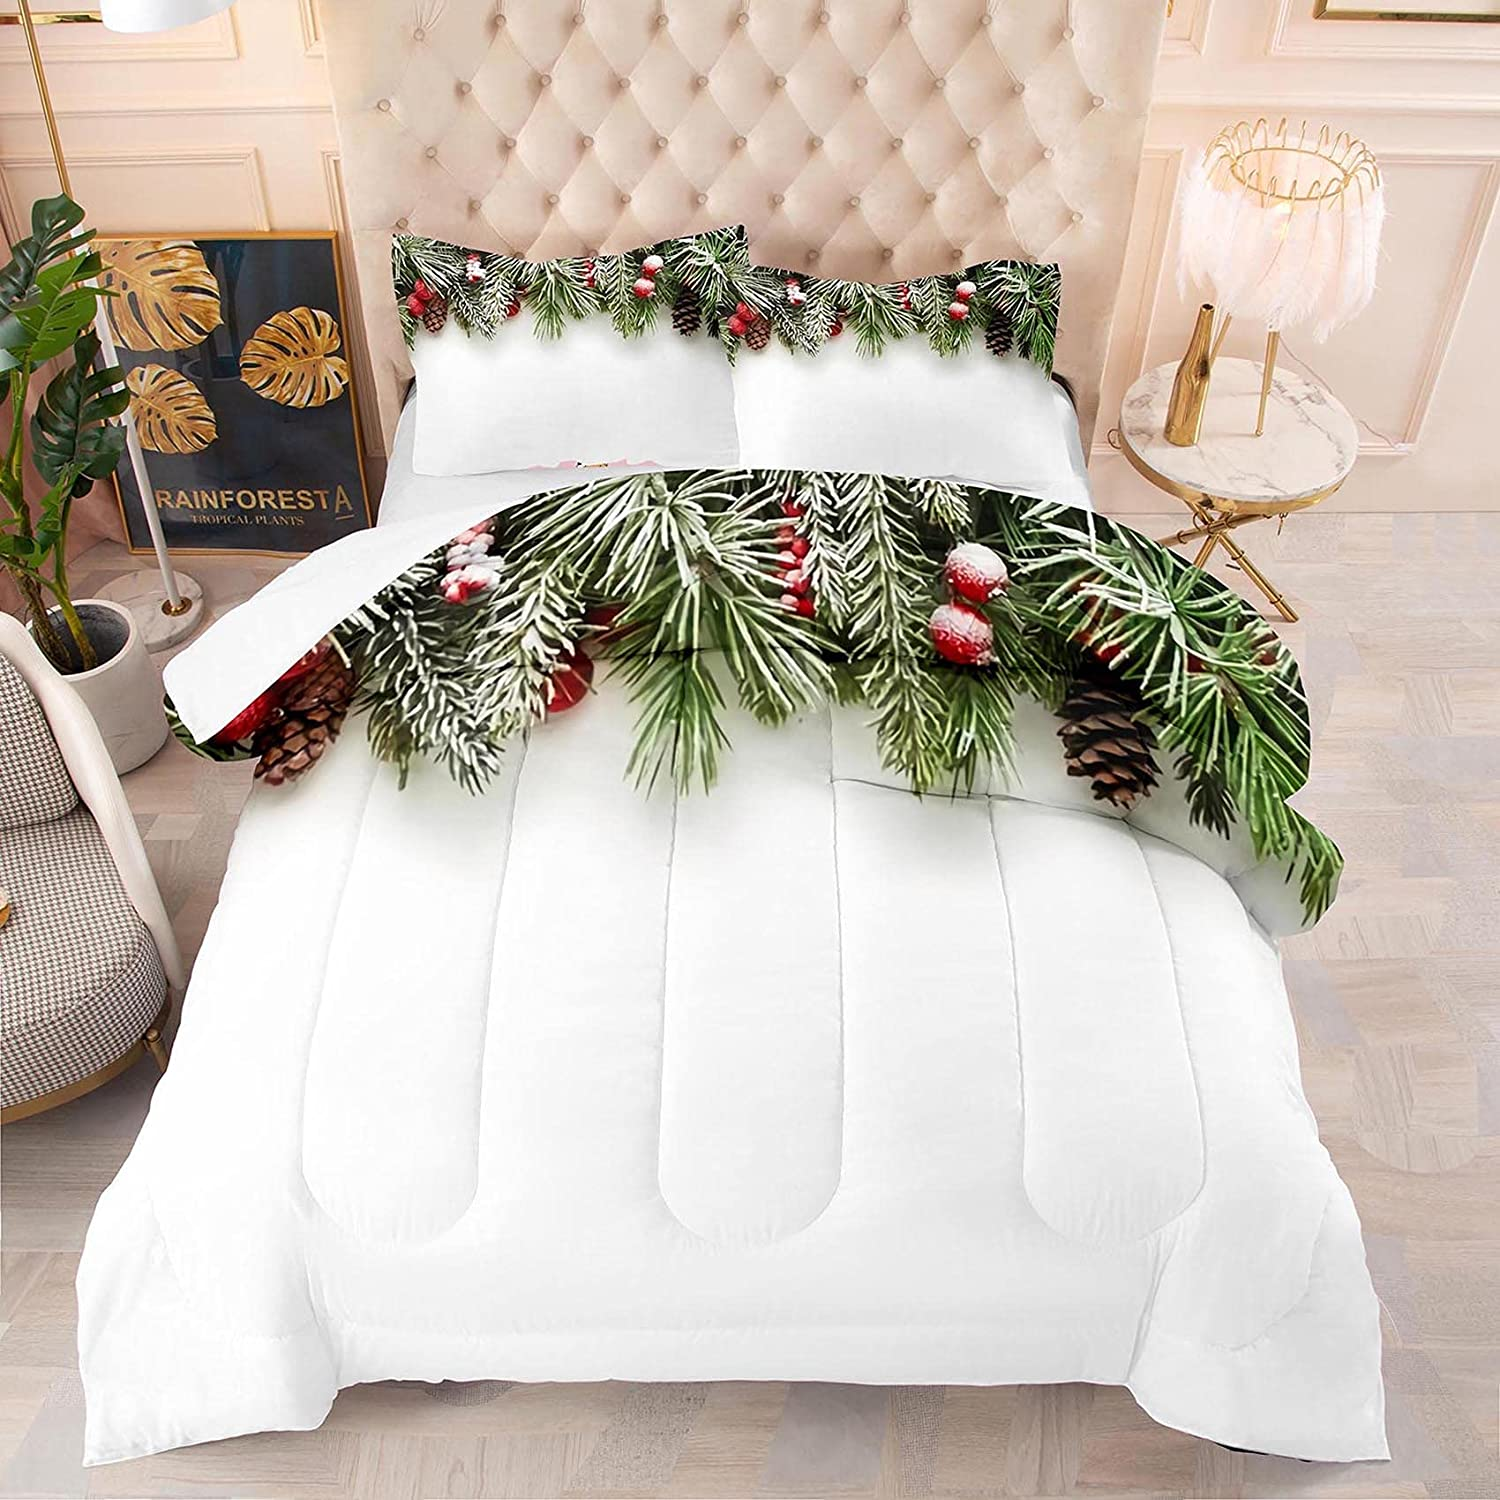 NINENINE Merry shipfree Christmas Comforter Sets Twin 3D Our shop most popular Teens for Boys C